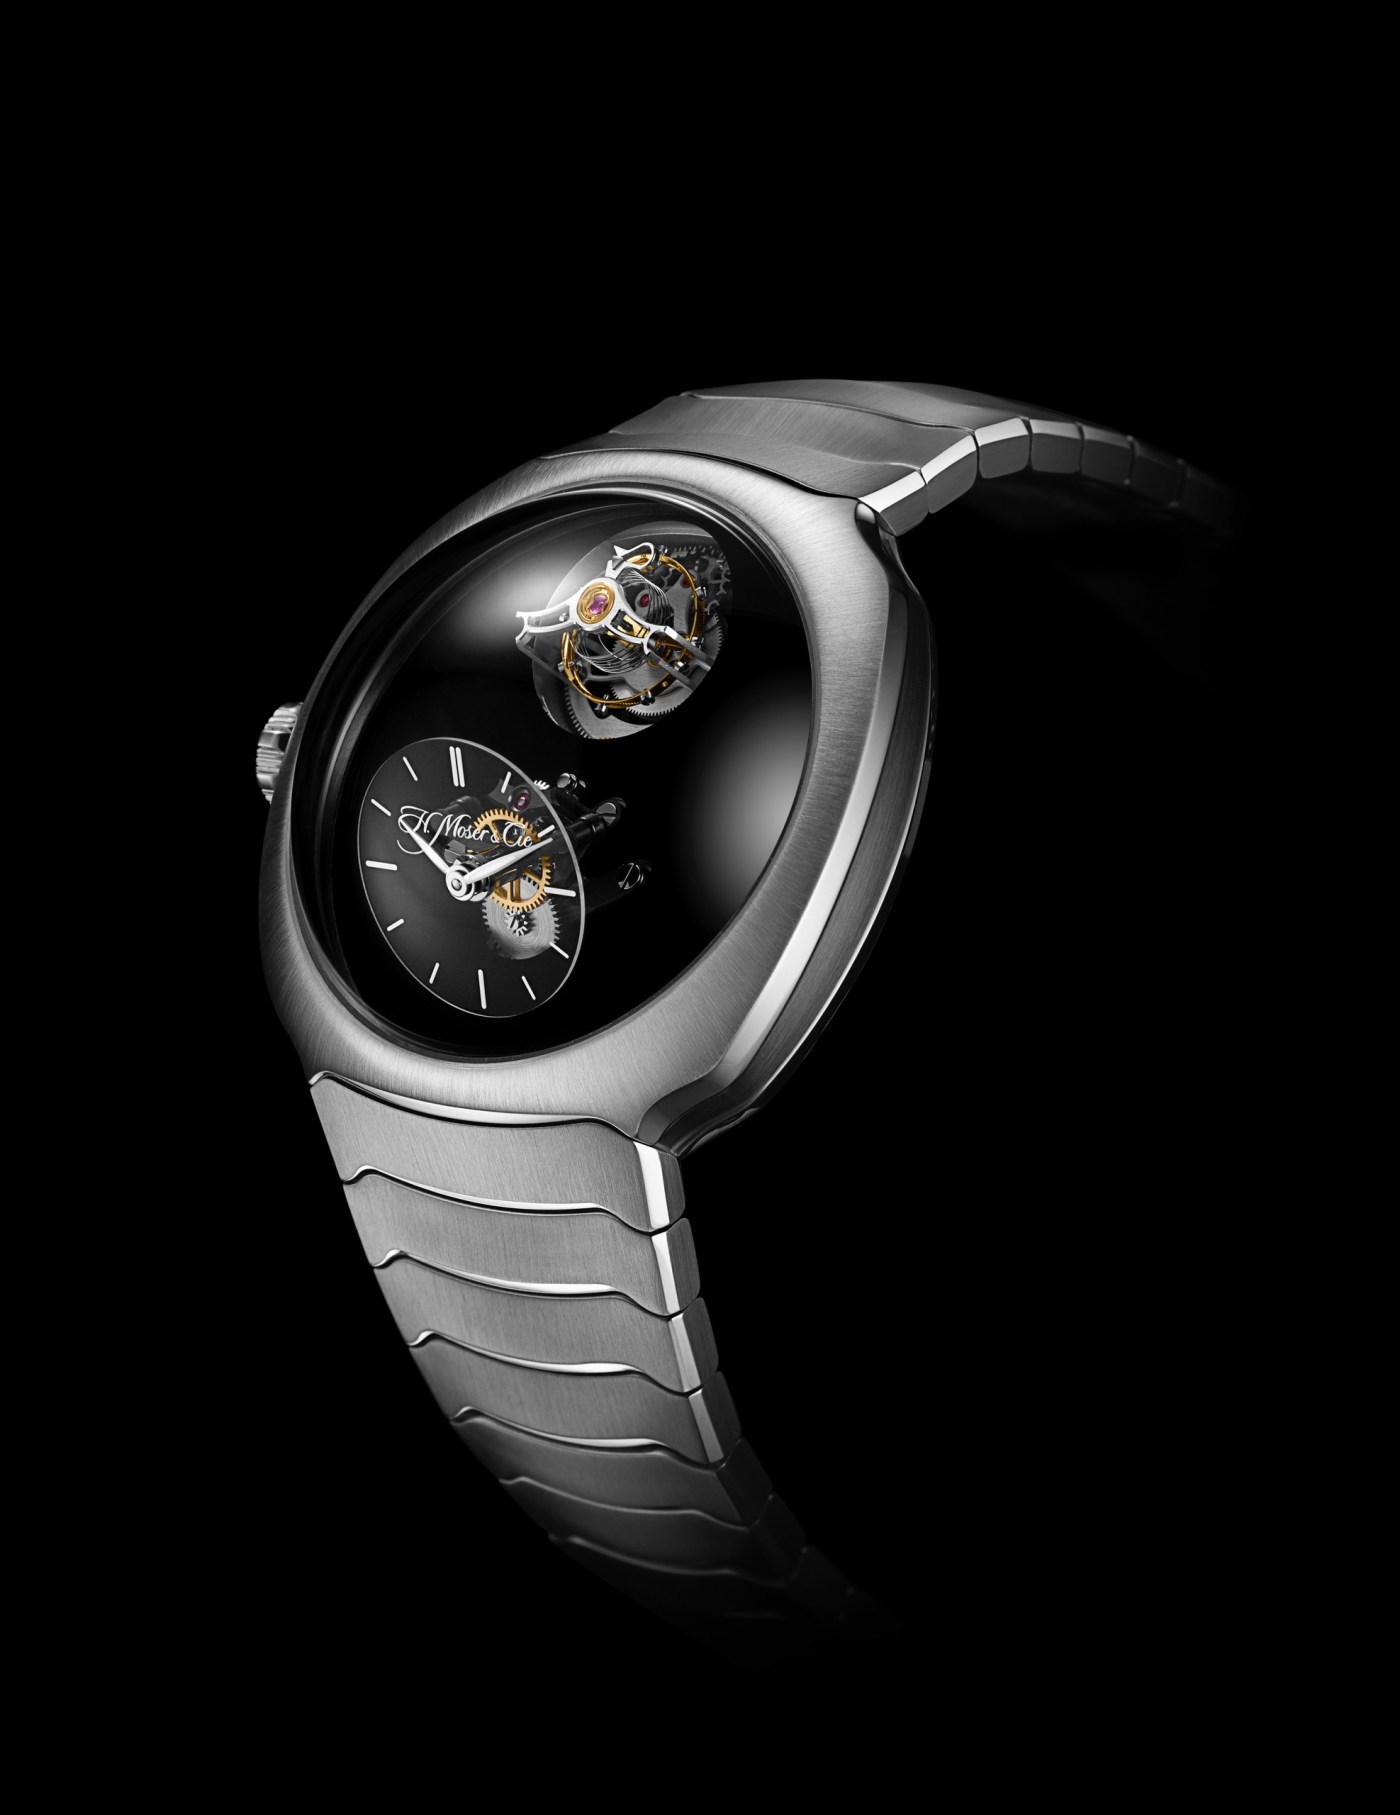 Moser Streamliner Cylindrical Tourbillon Only Watch